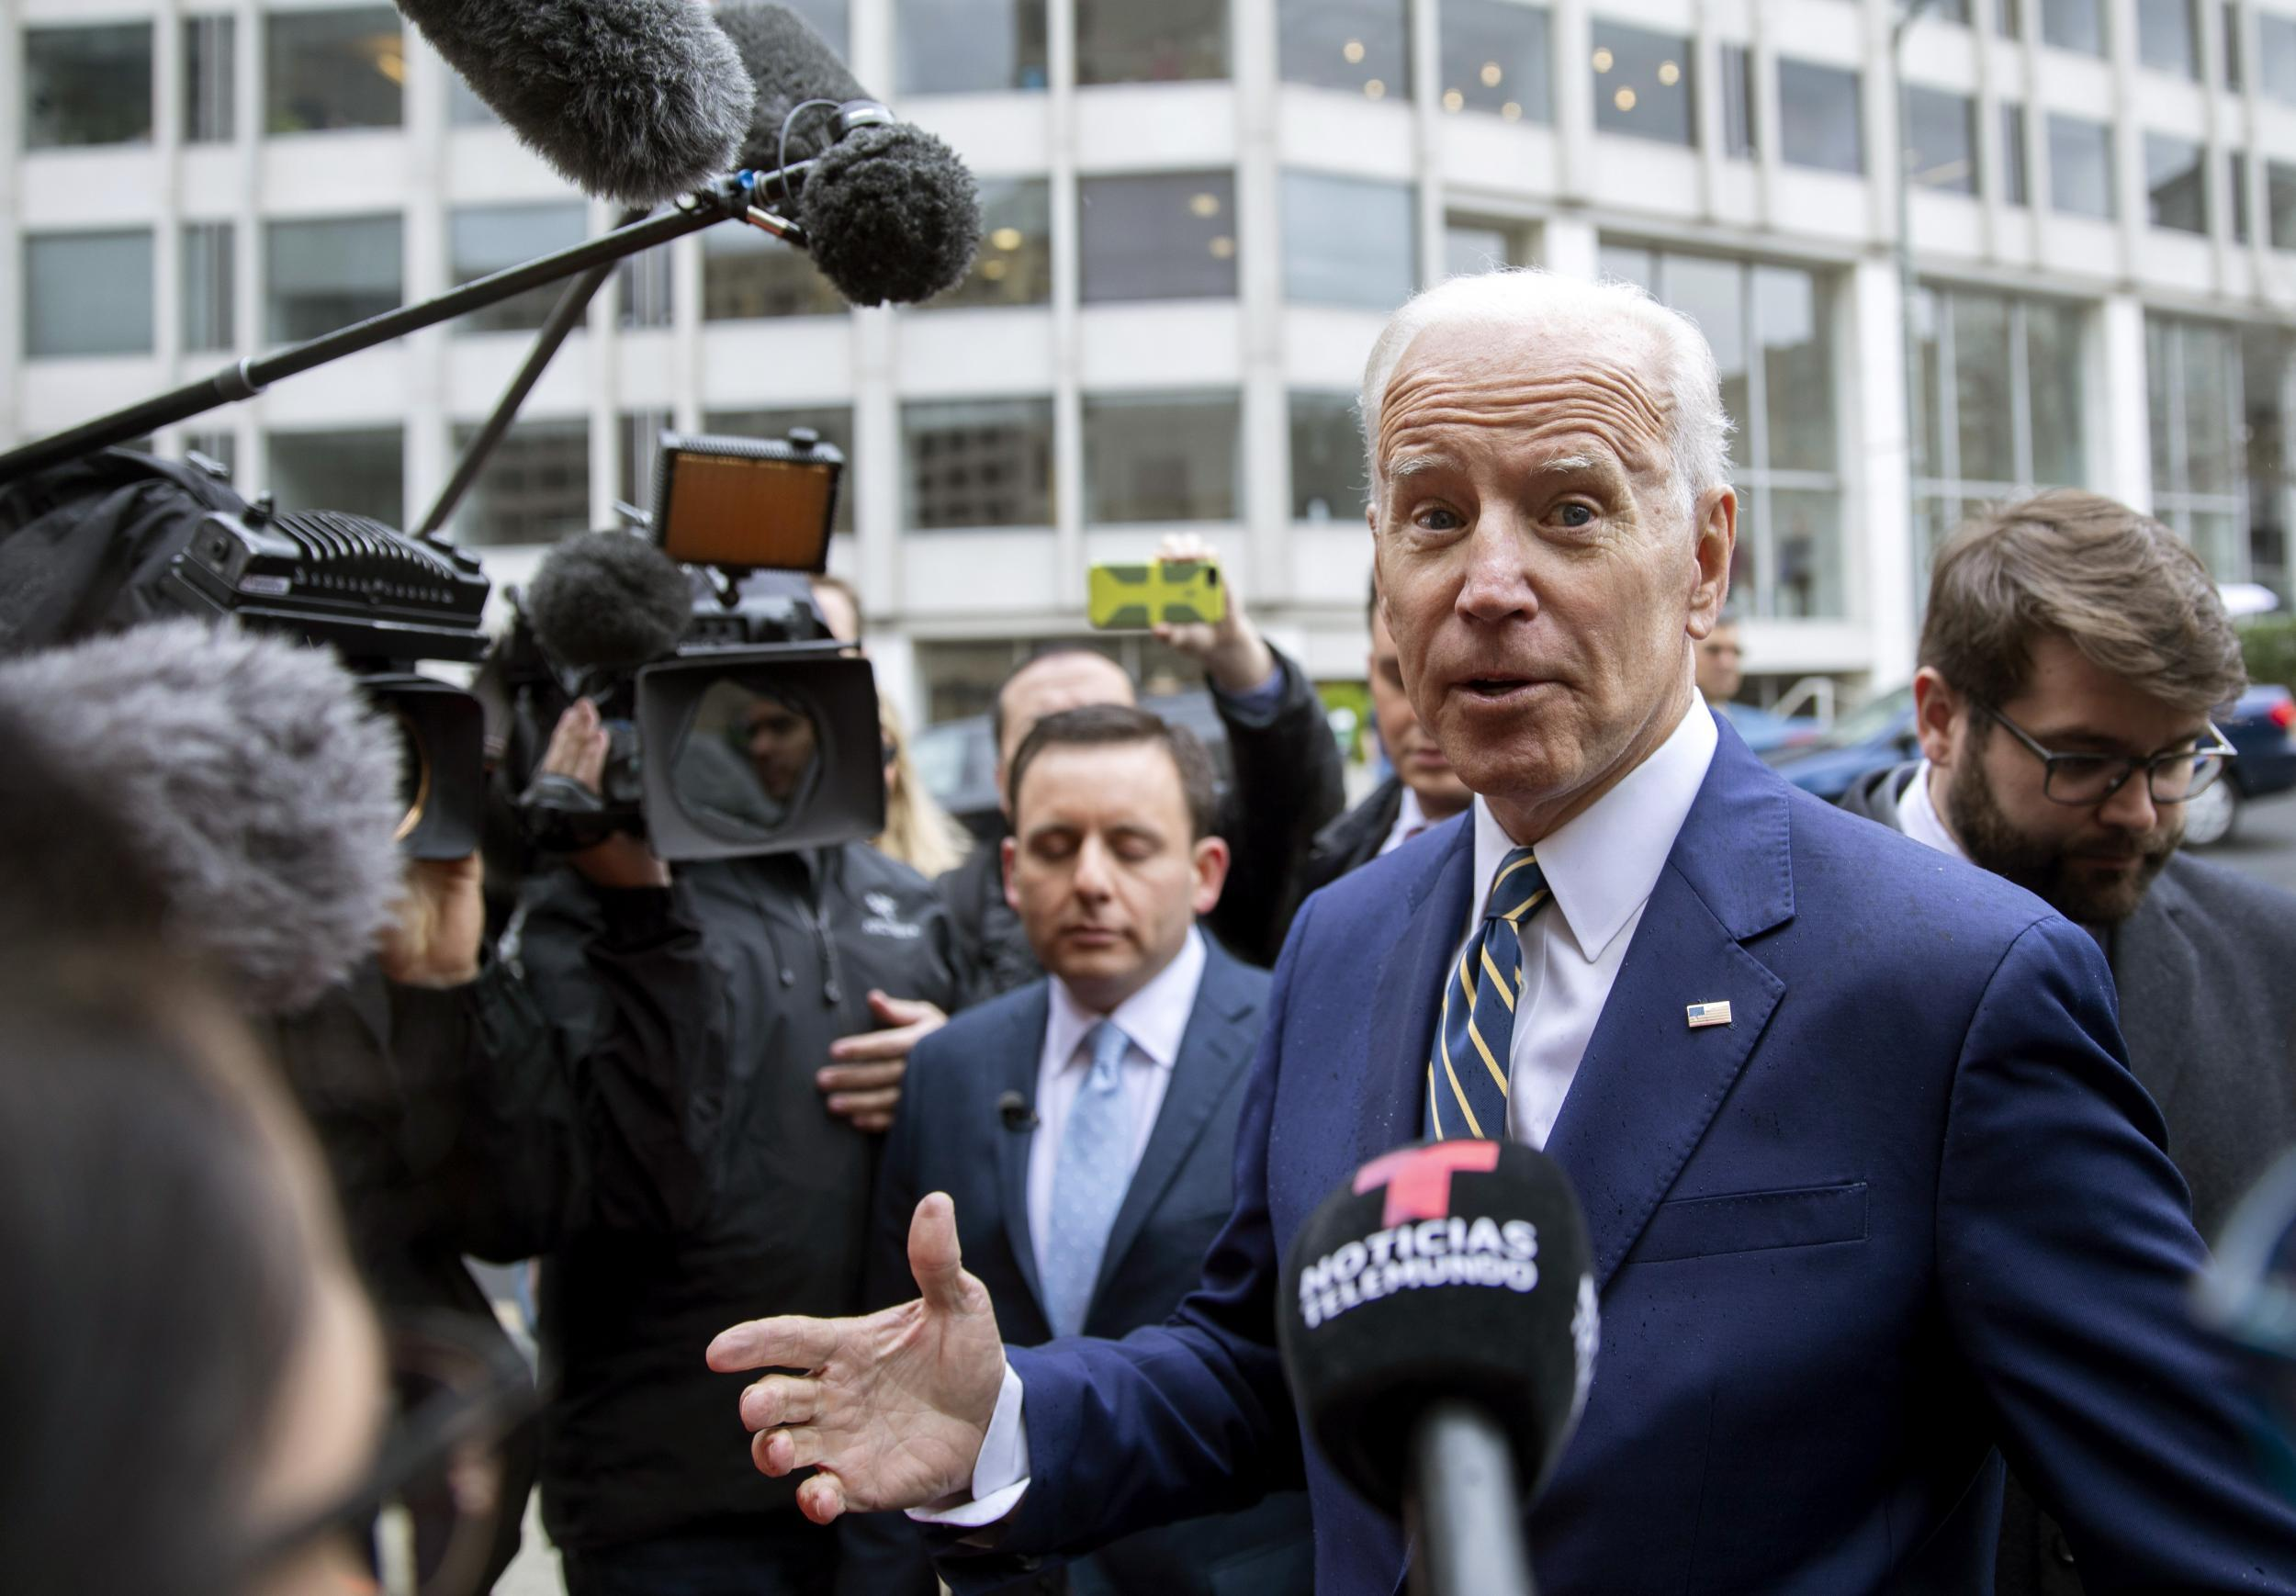 Biden claims Russian Federation wouldn't meddle in elections on his watch